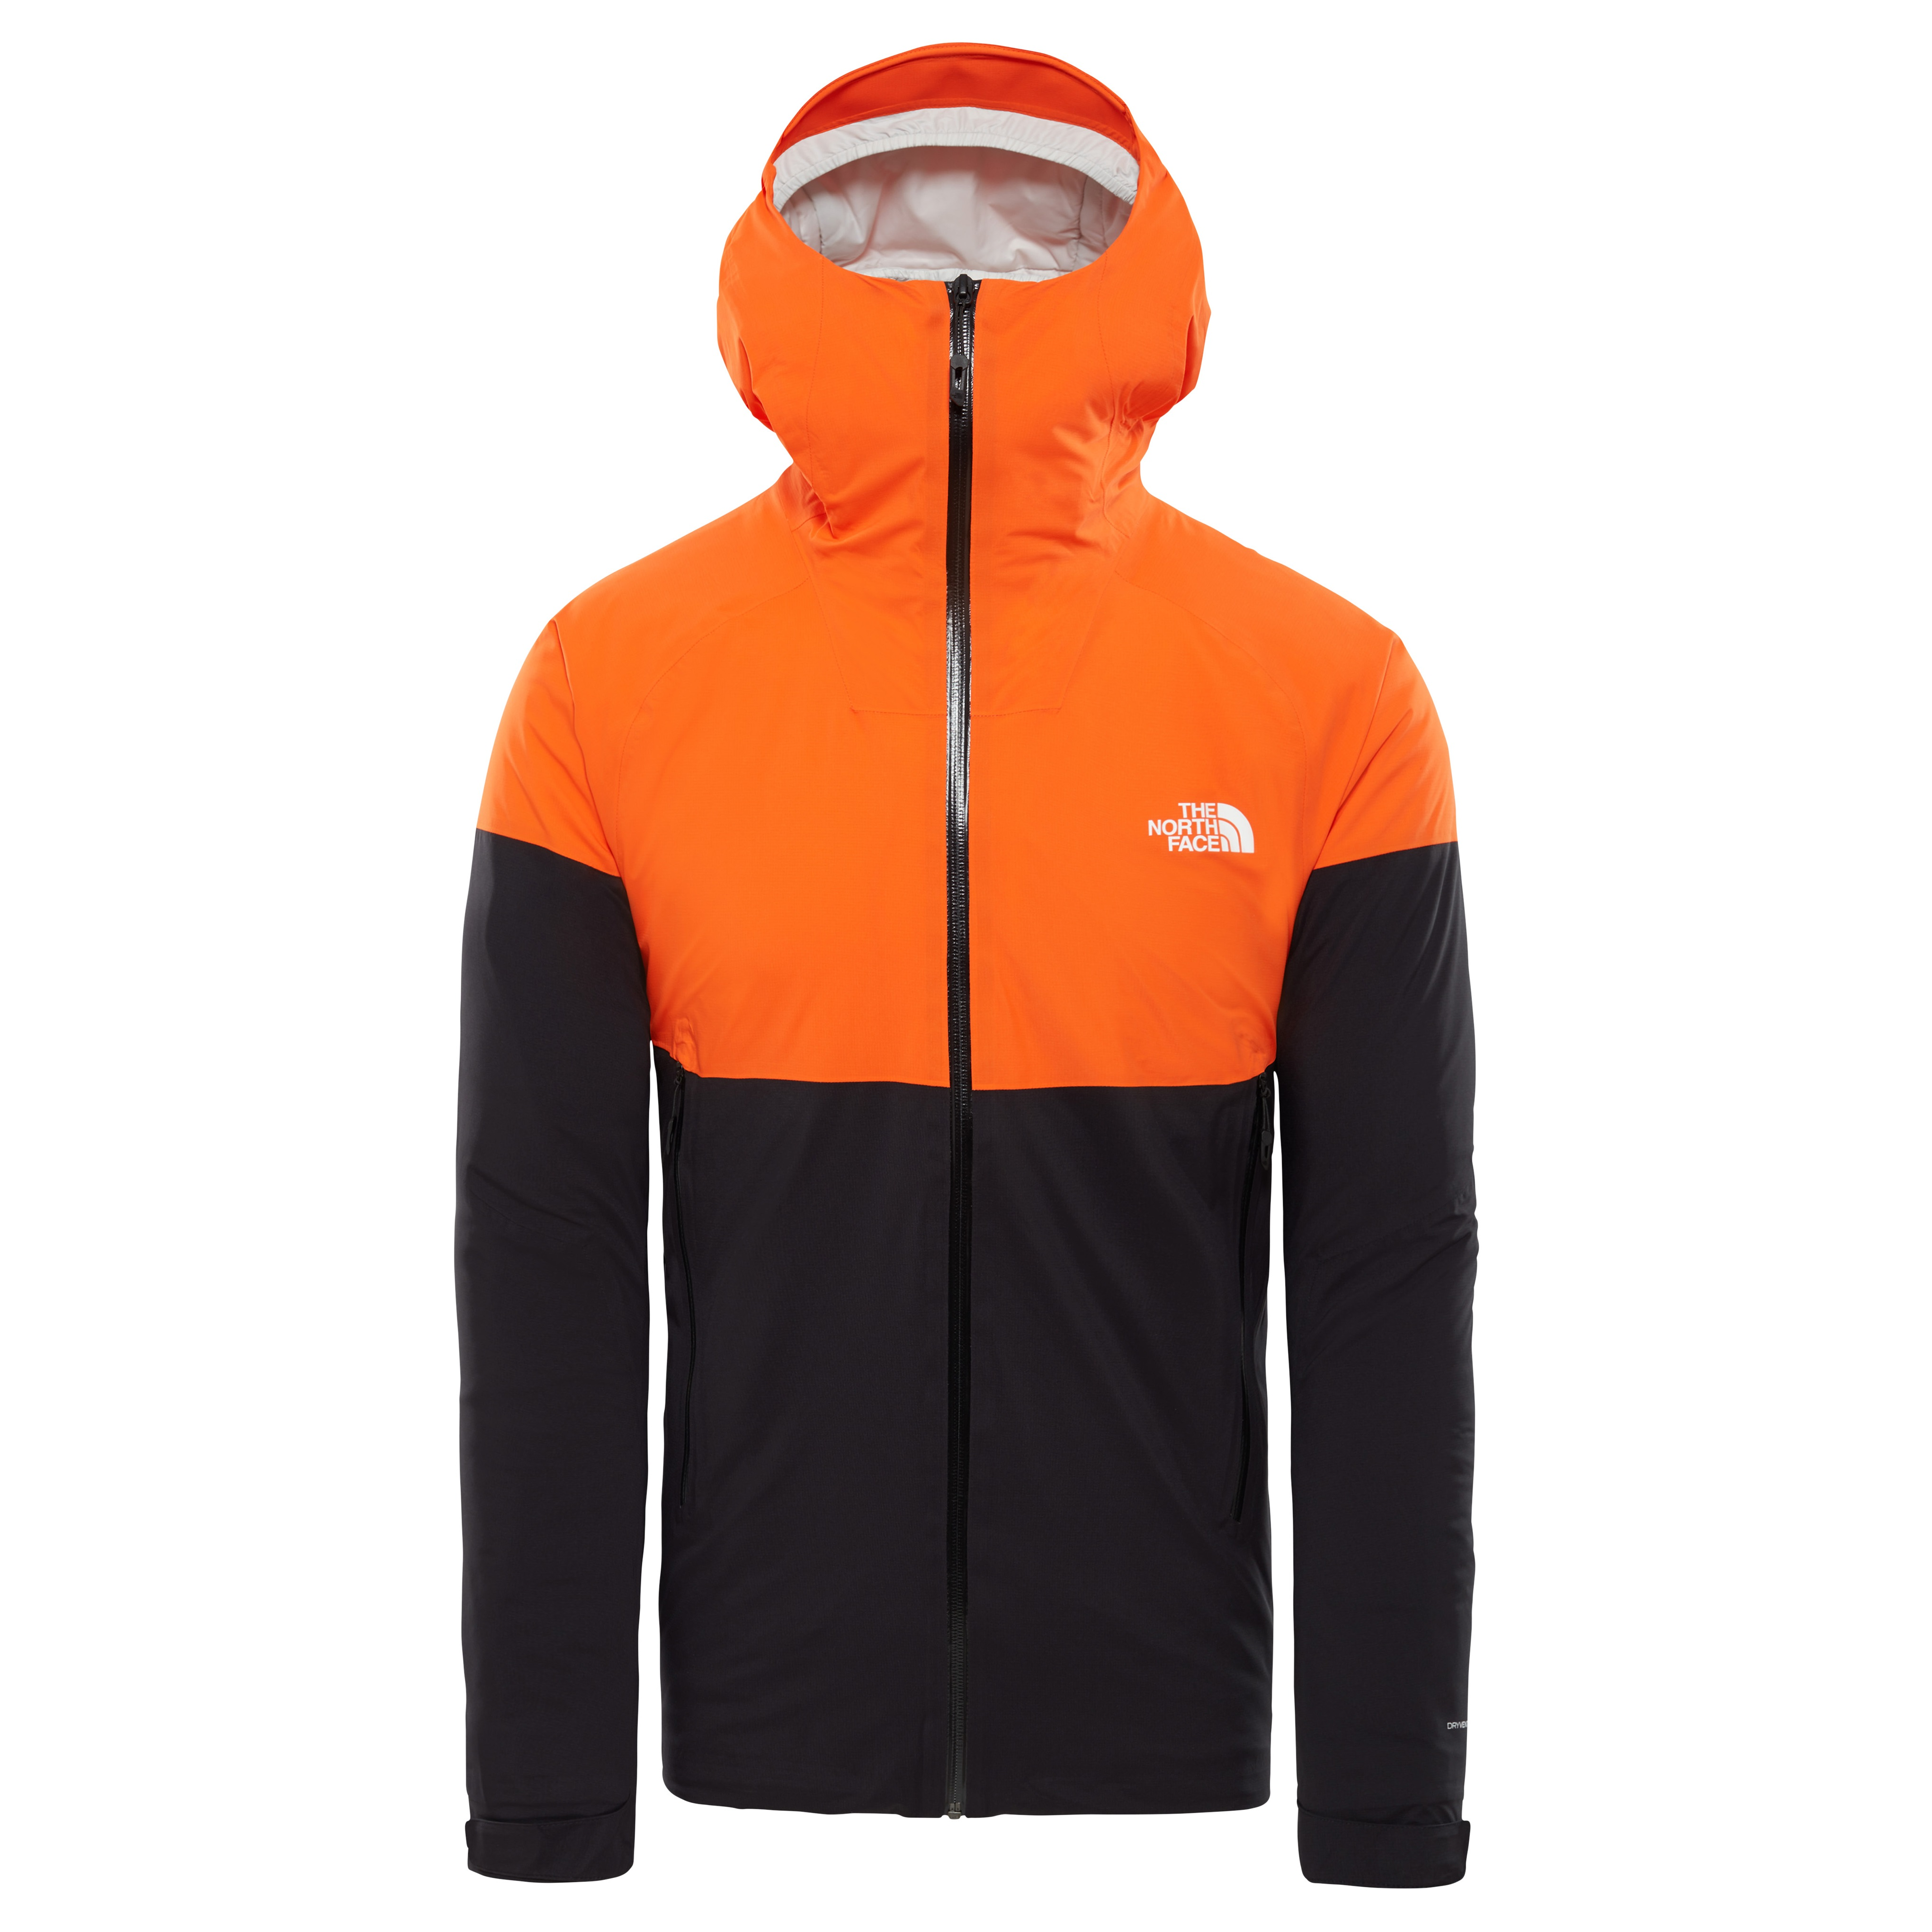 THE NORTH FACE M IMPENDOR INSULATED JKT - gallery 0 b4593d51d870